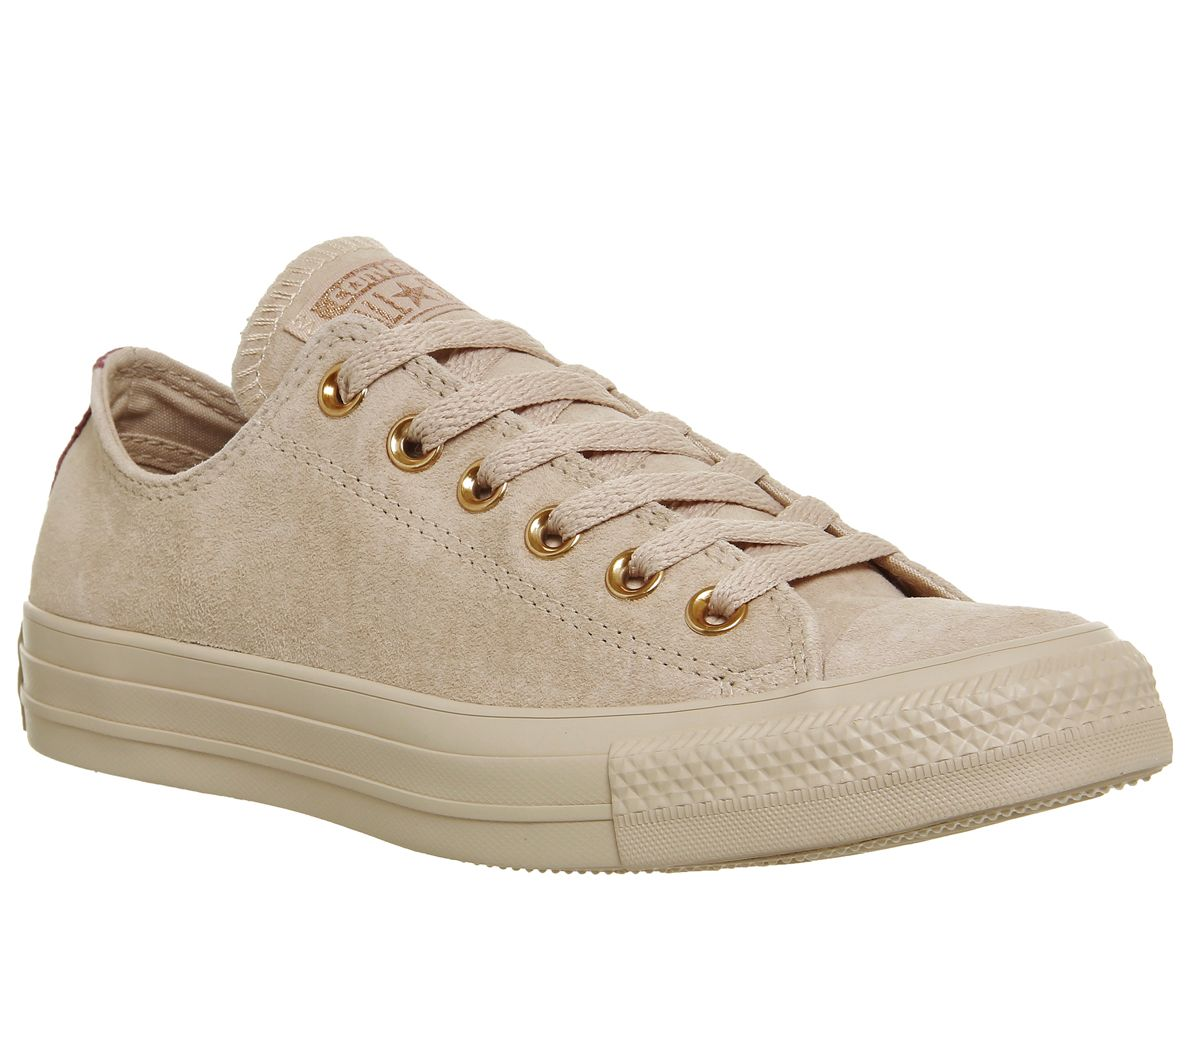 Converse Converse Allstar Low Leather Trainers, Cream